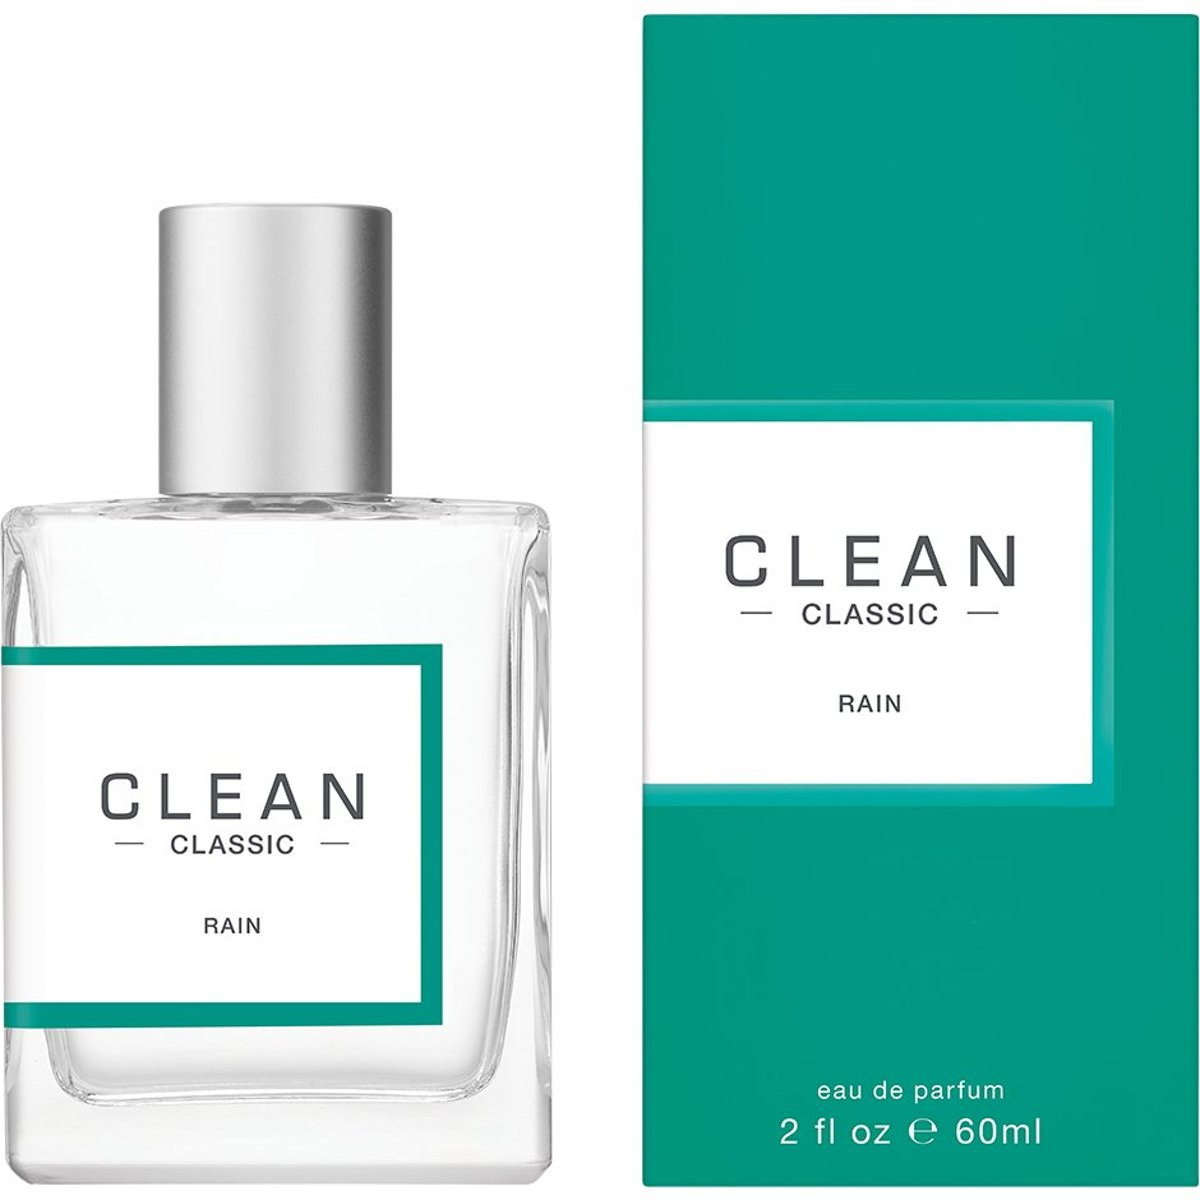 Clean Classic Rain Edp Spray 60ml